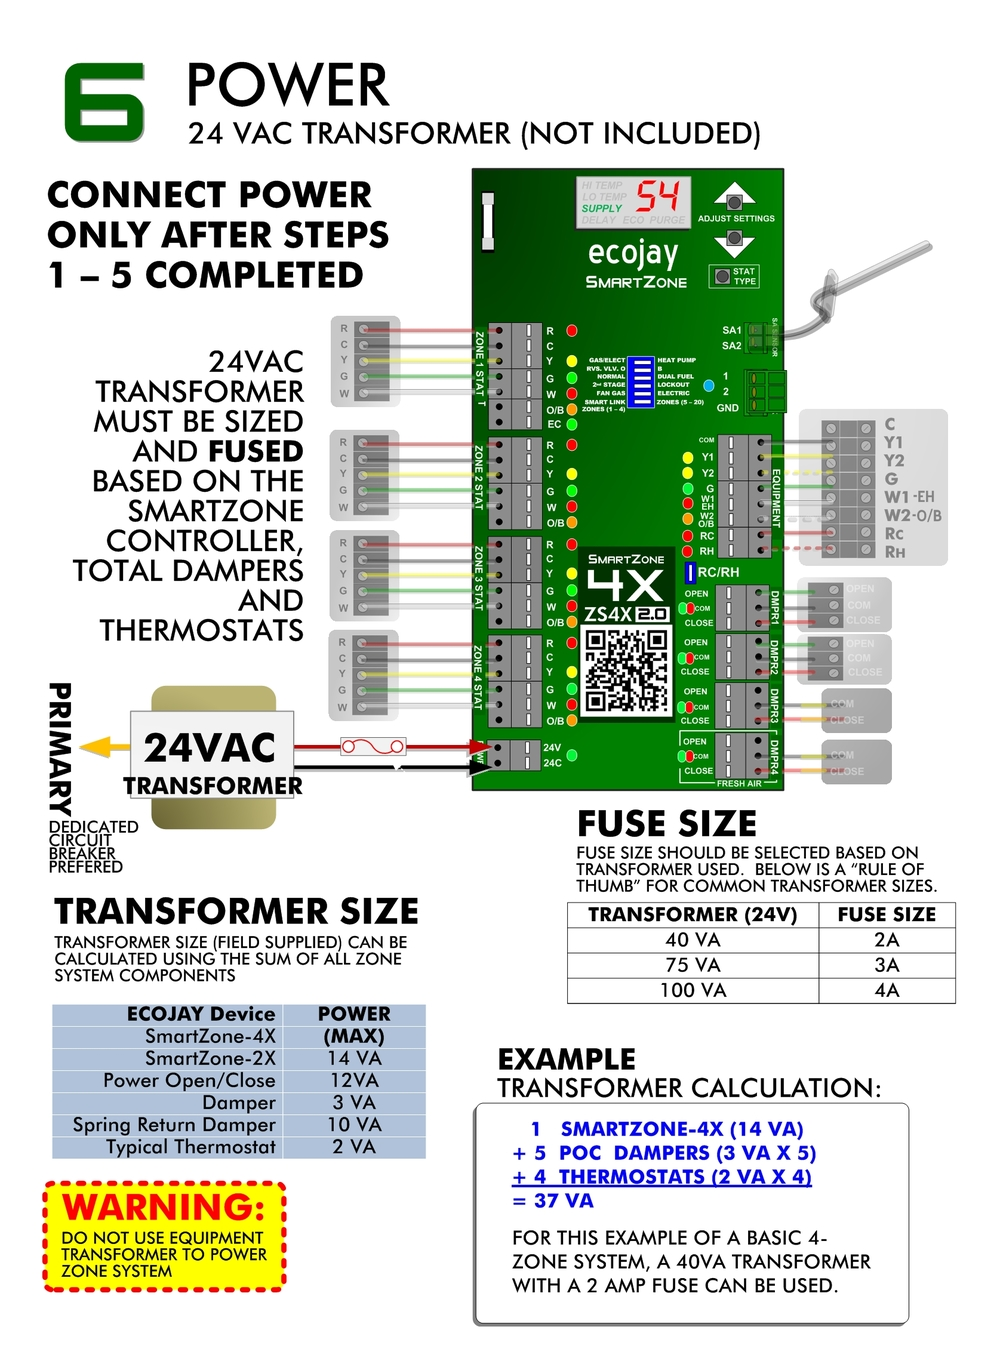 Zone Control Smartzone 2 4x Guide Thermostat Wiring Two Transformers Install 24vac Power